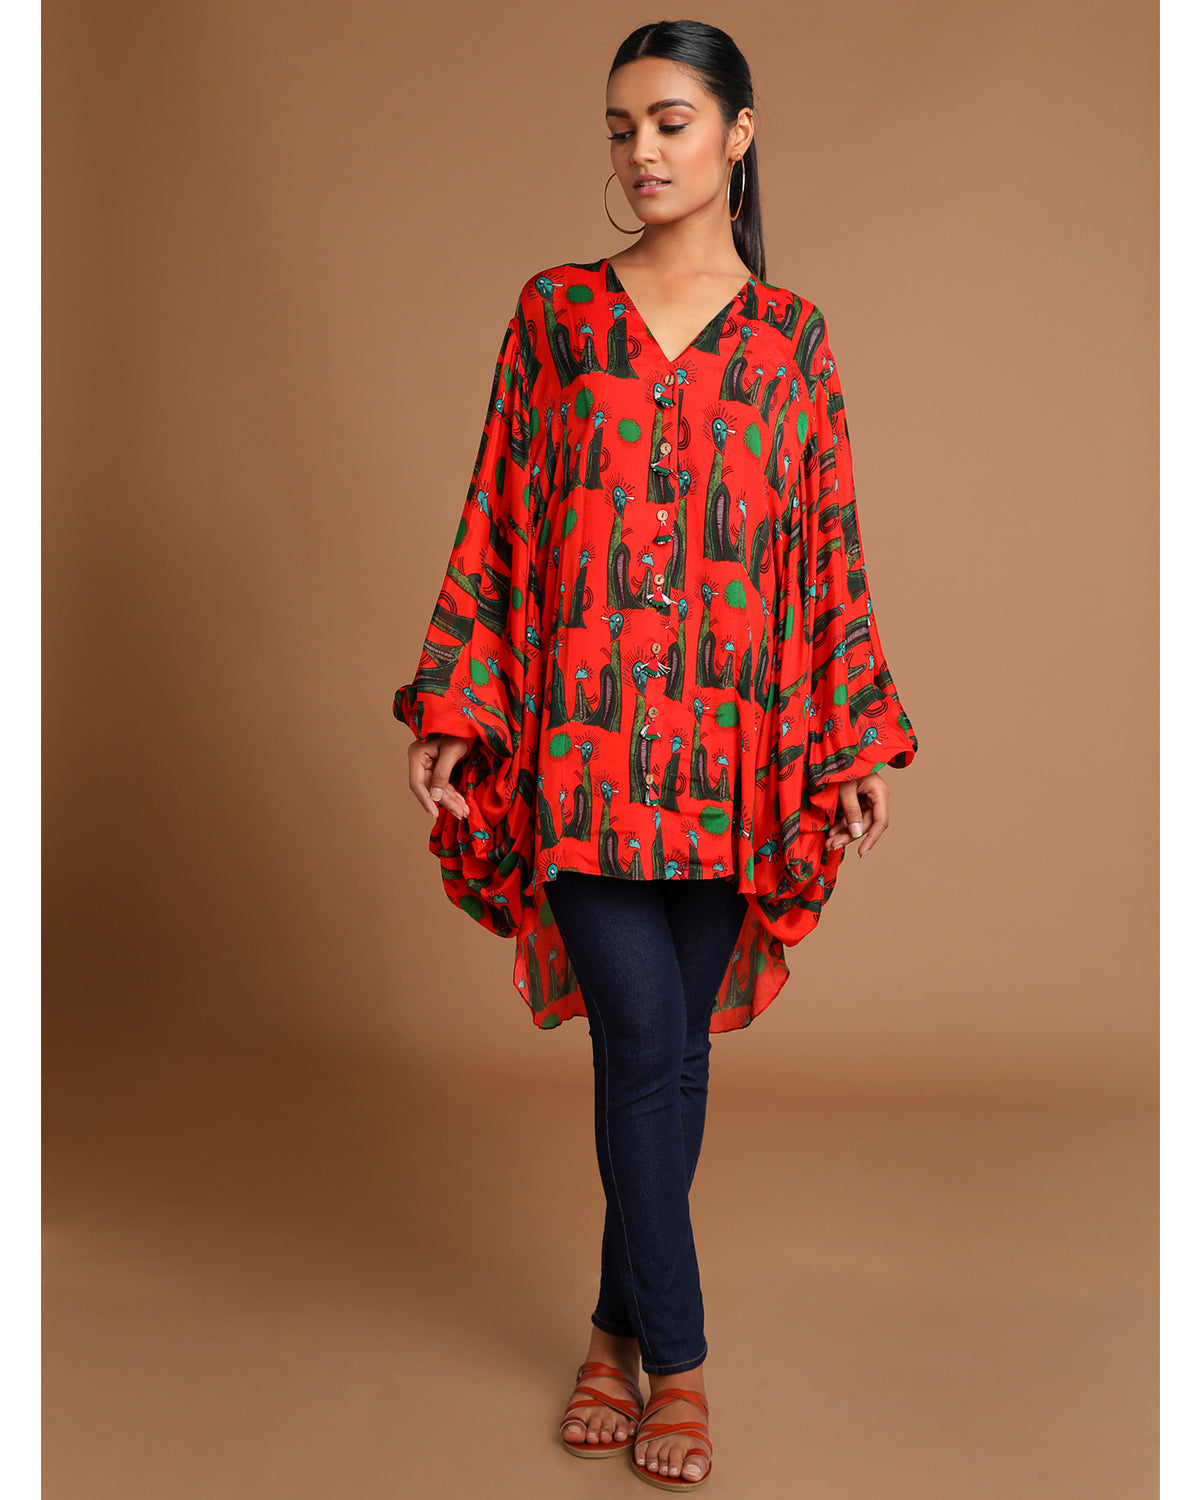 Red Pins and Needles Blouse